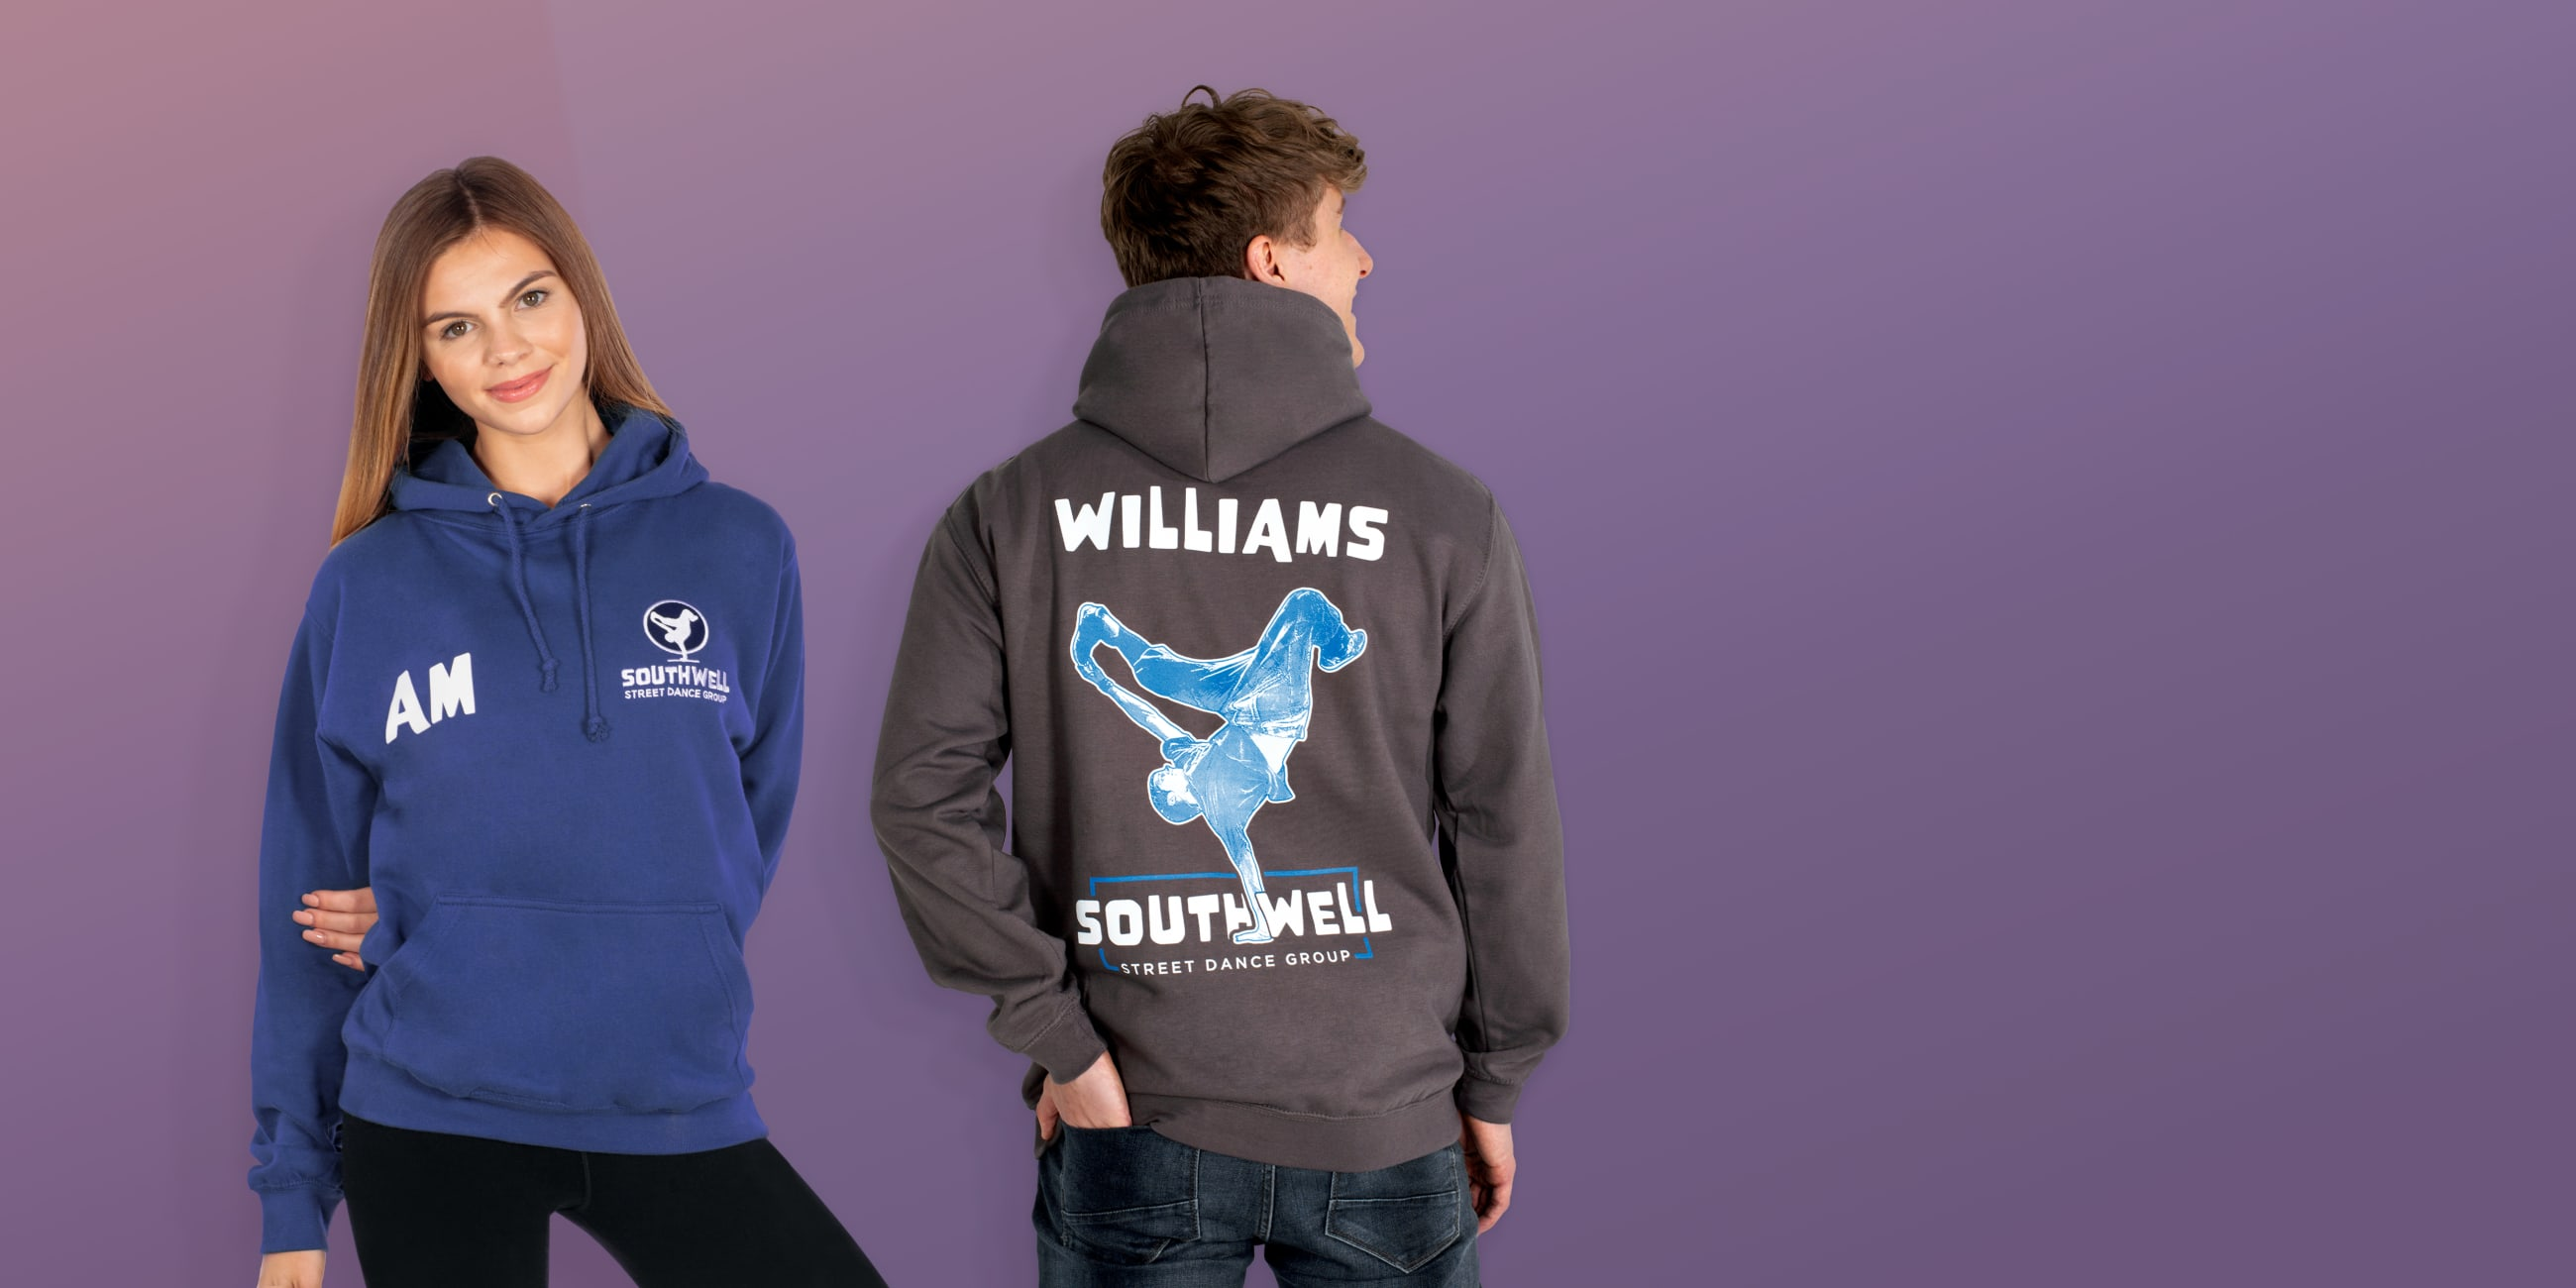 customise dane and theatre group hoodies with names